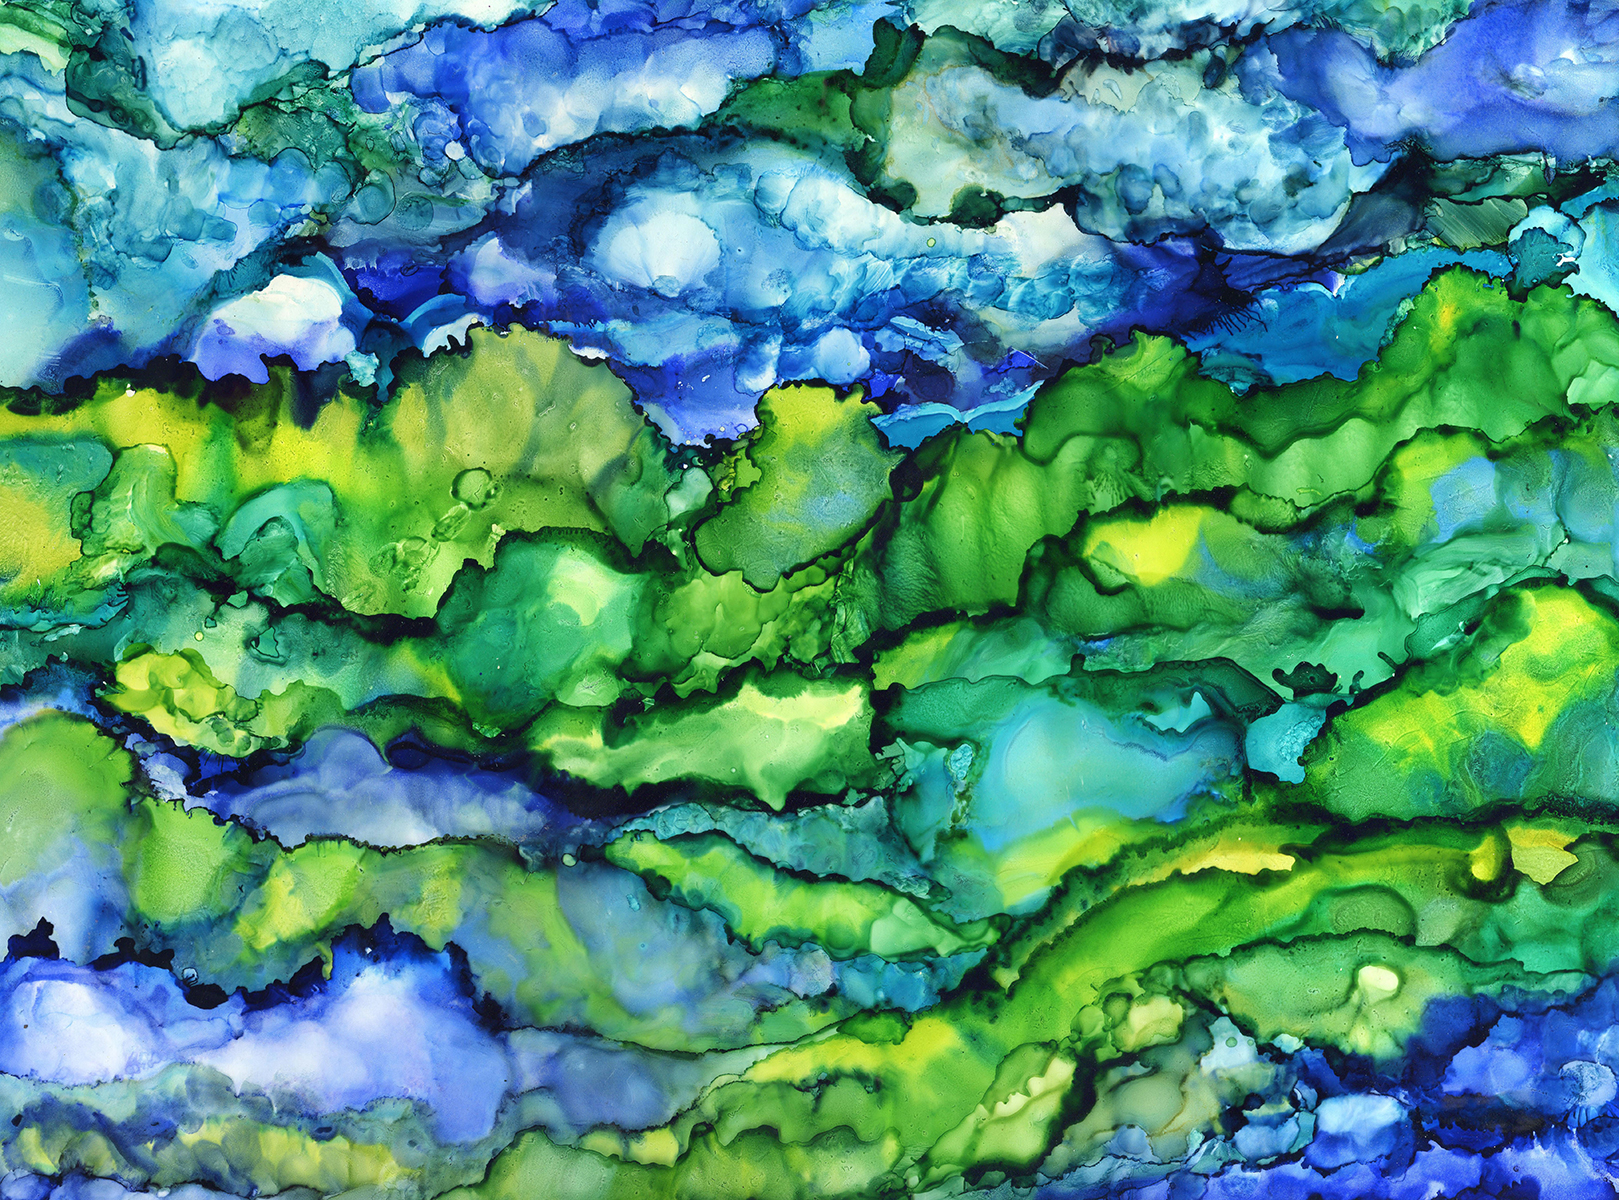 The Hills of Wales - Alcohol Ink - 18 X 24 - Sold - Print Available